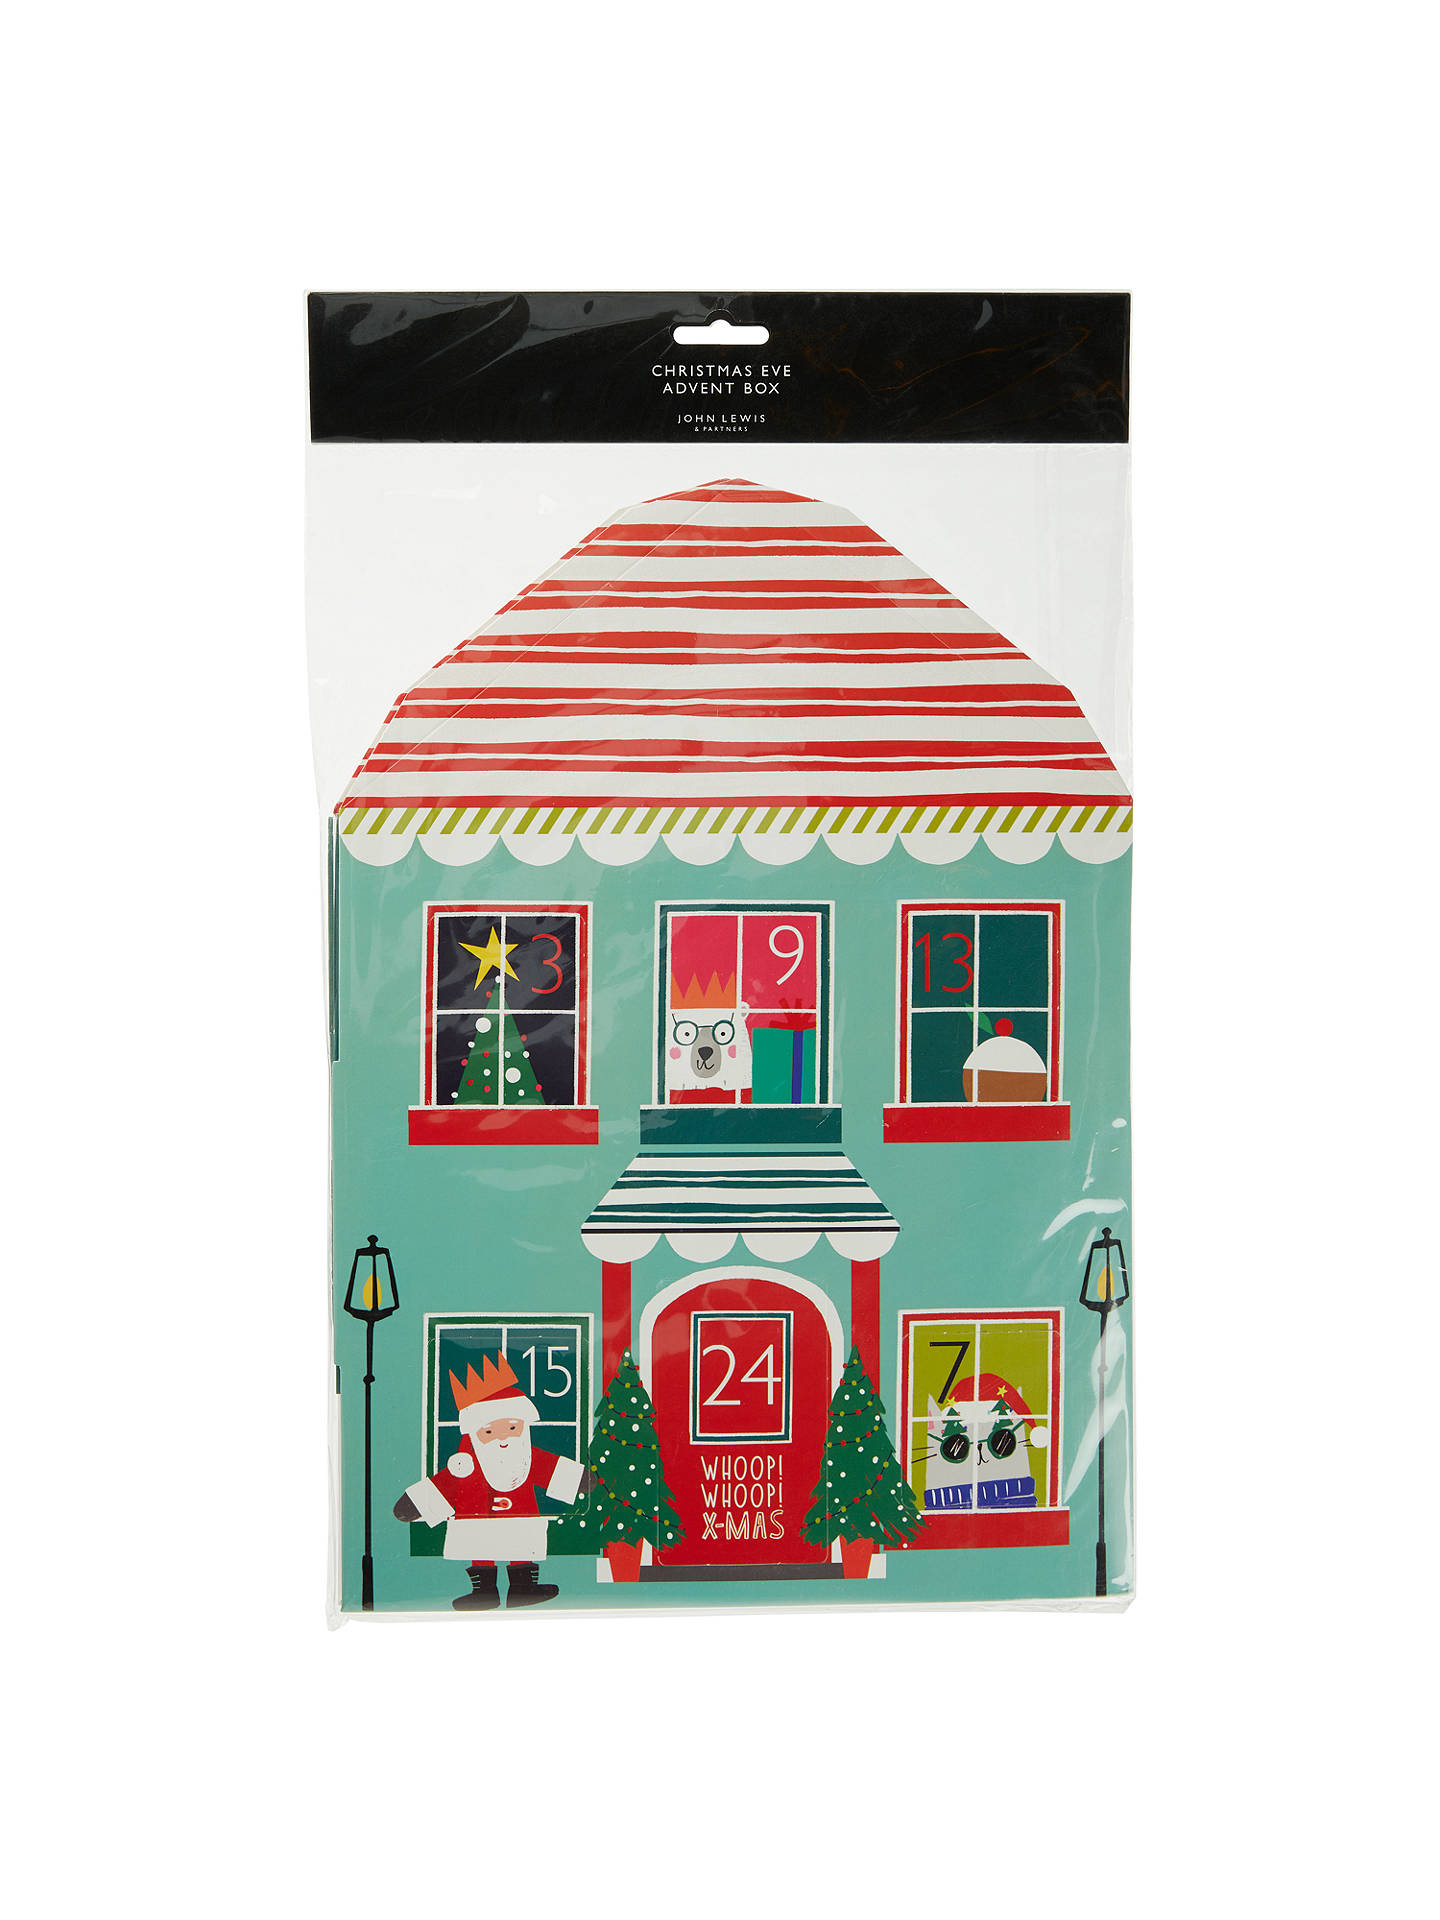 BuyJohn Lewis & Partners Christmas Eve Box Advent Calendar Online at johnlewis.com